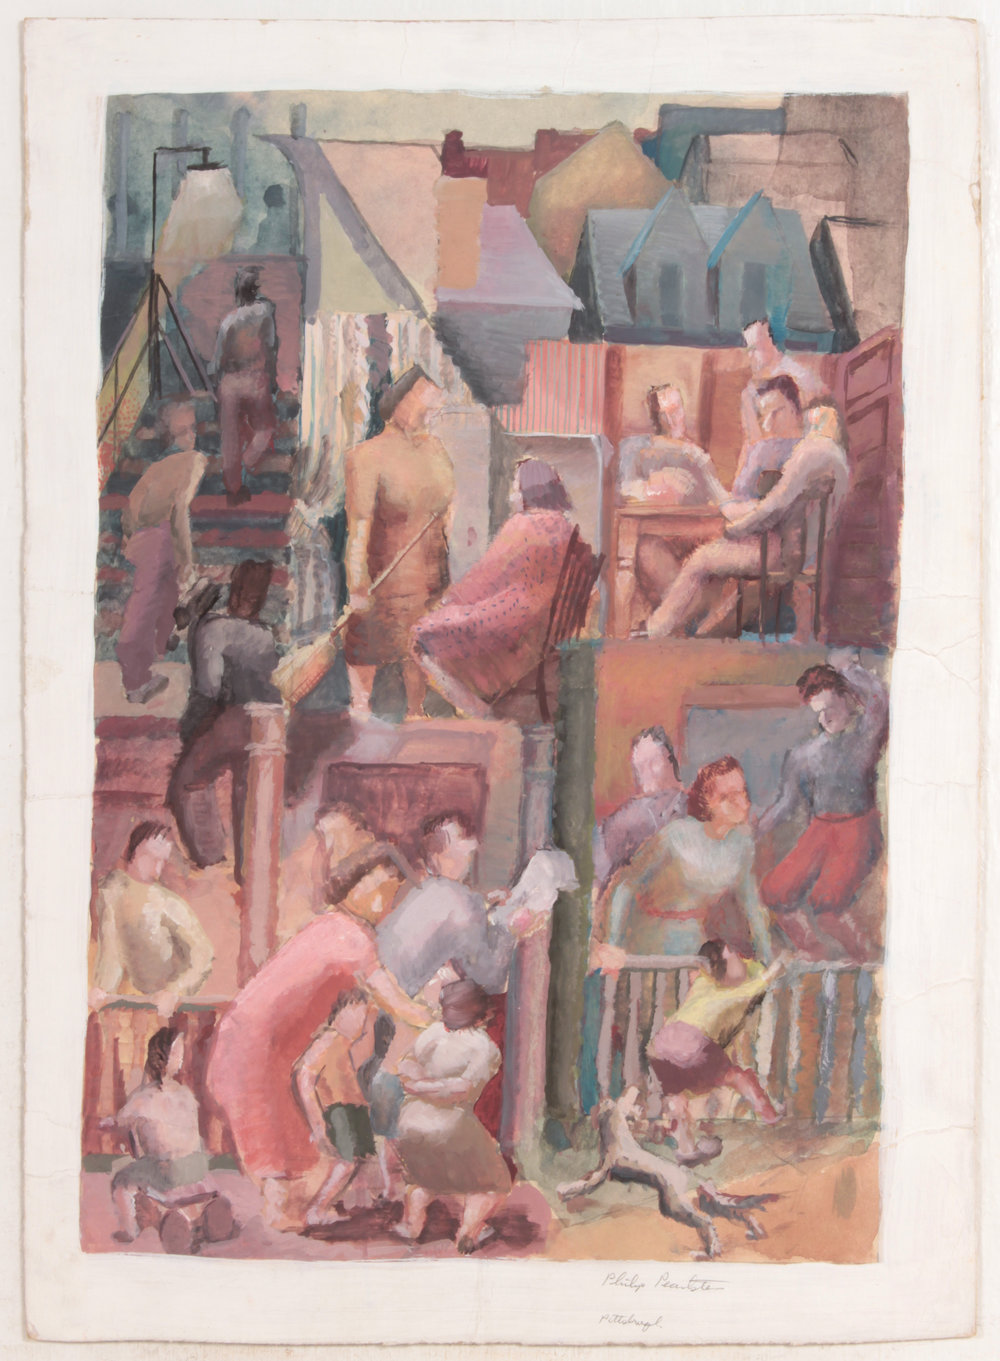 7. 1948-49, Greenfield Hazelwood (Pittsburgh Scenes_Finished), Casein on Paper, 15.75x11.375, PPS 490.JPG